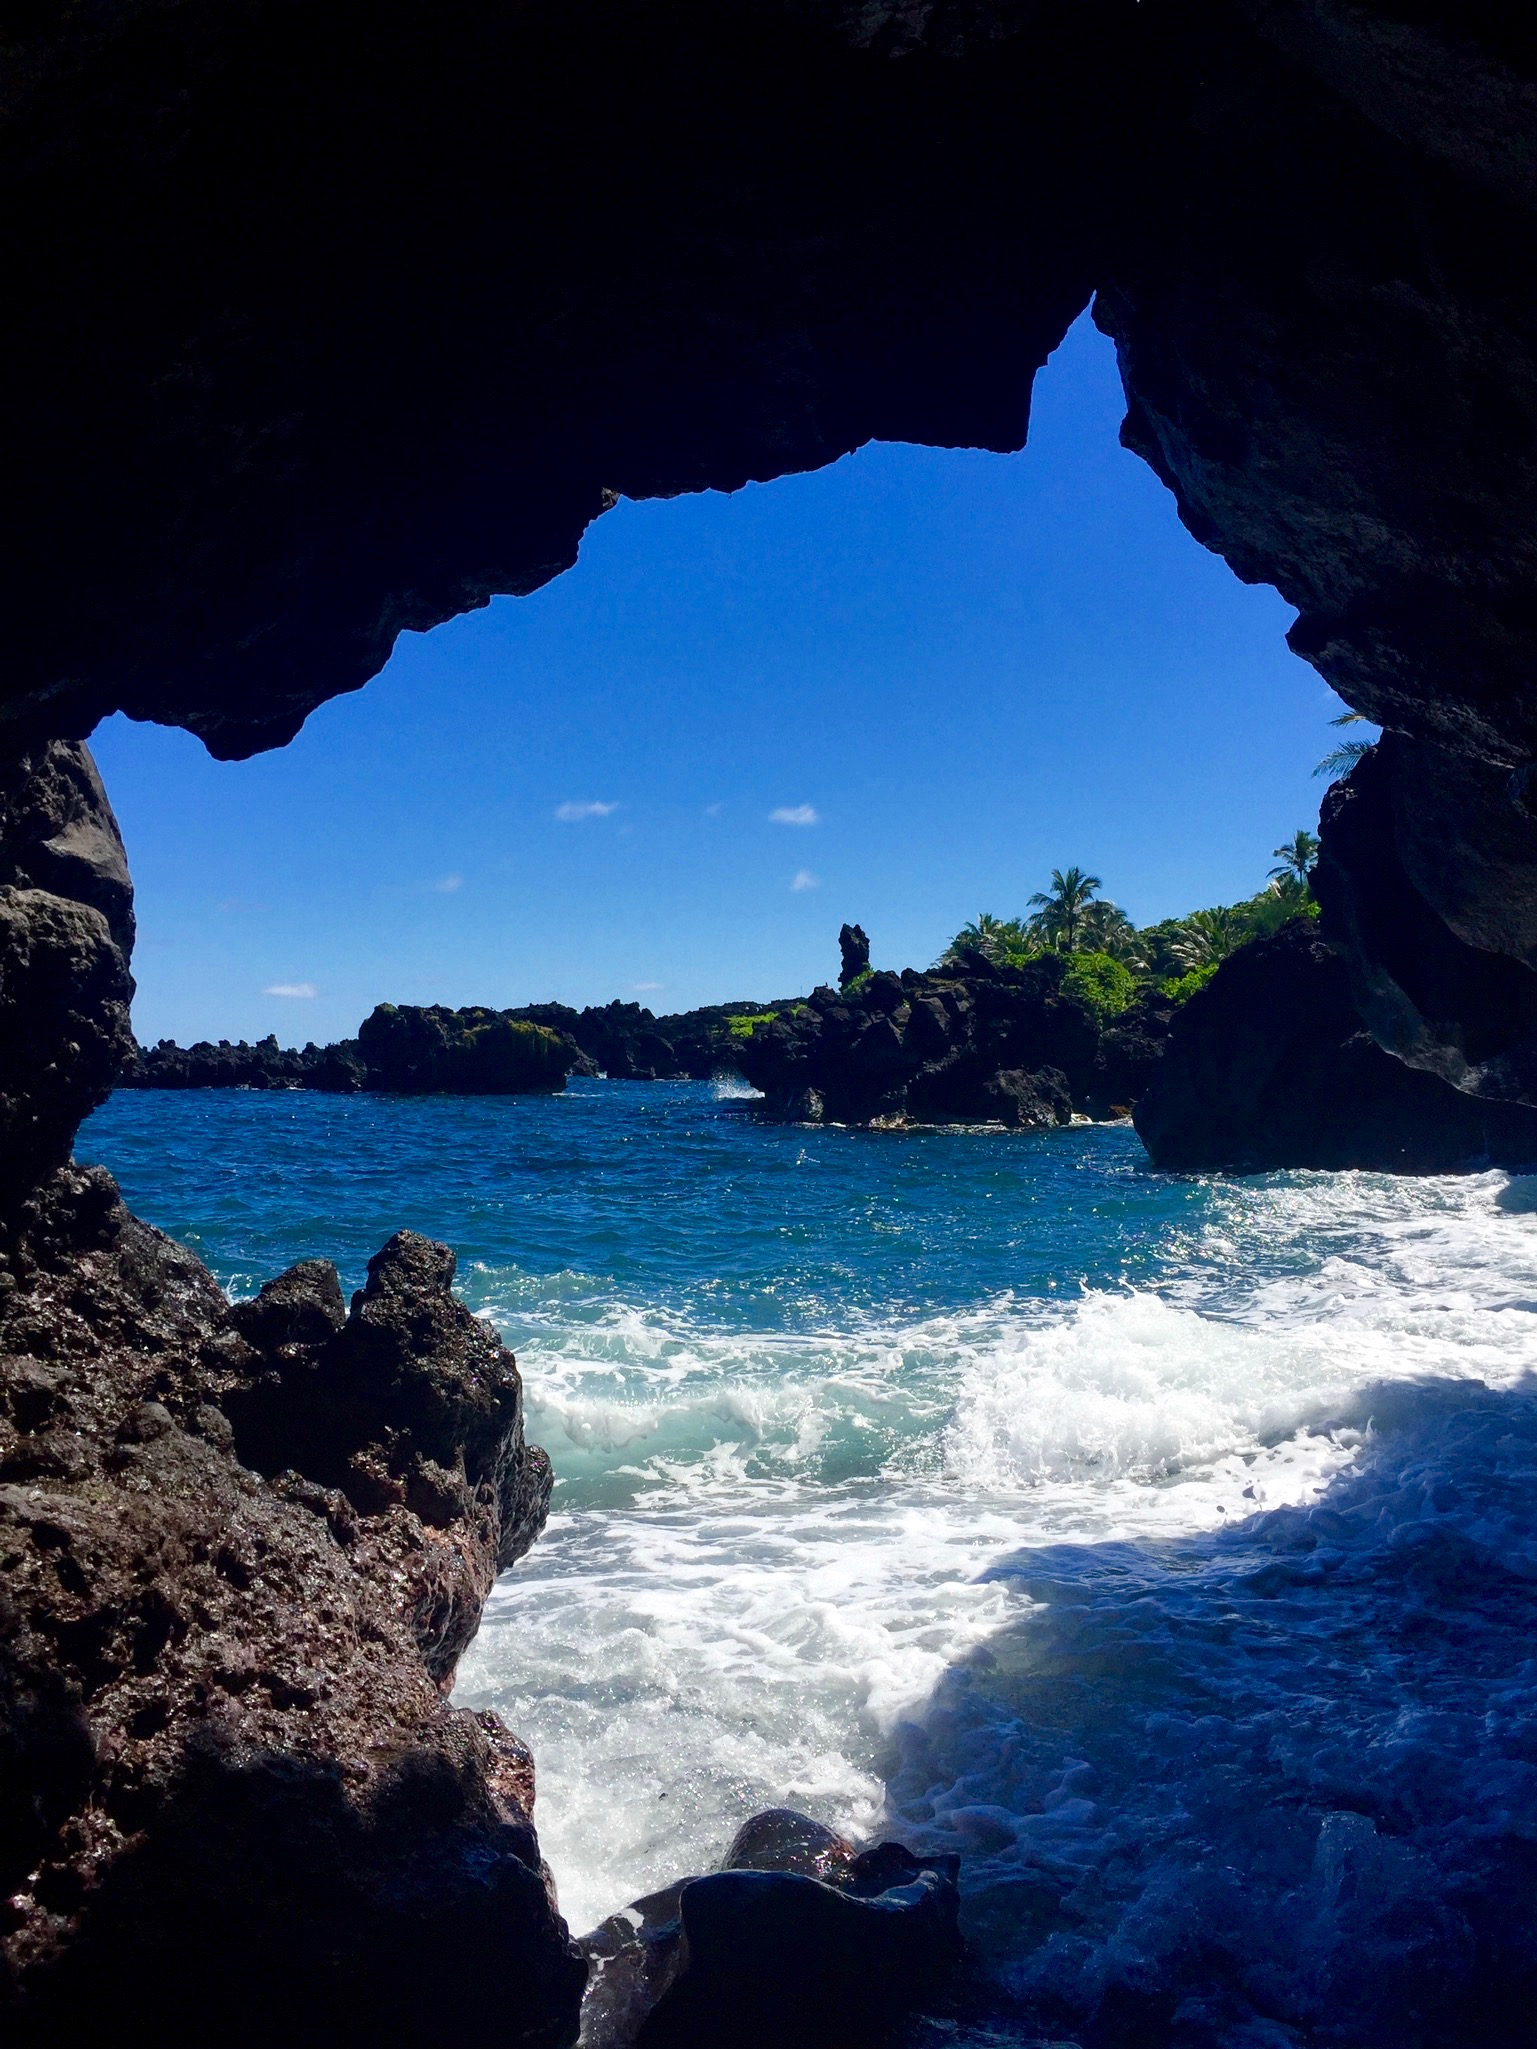 A lava tube cave on the ride side of the beach.